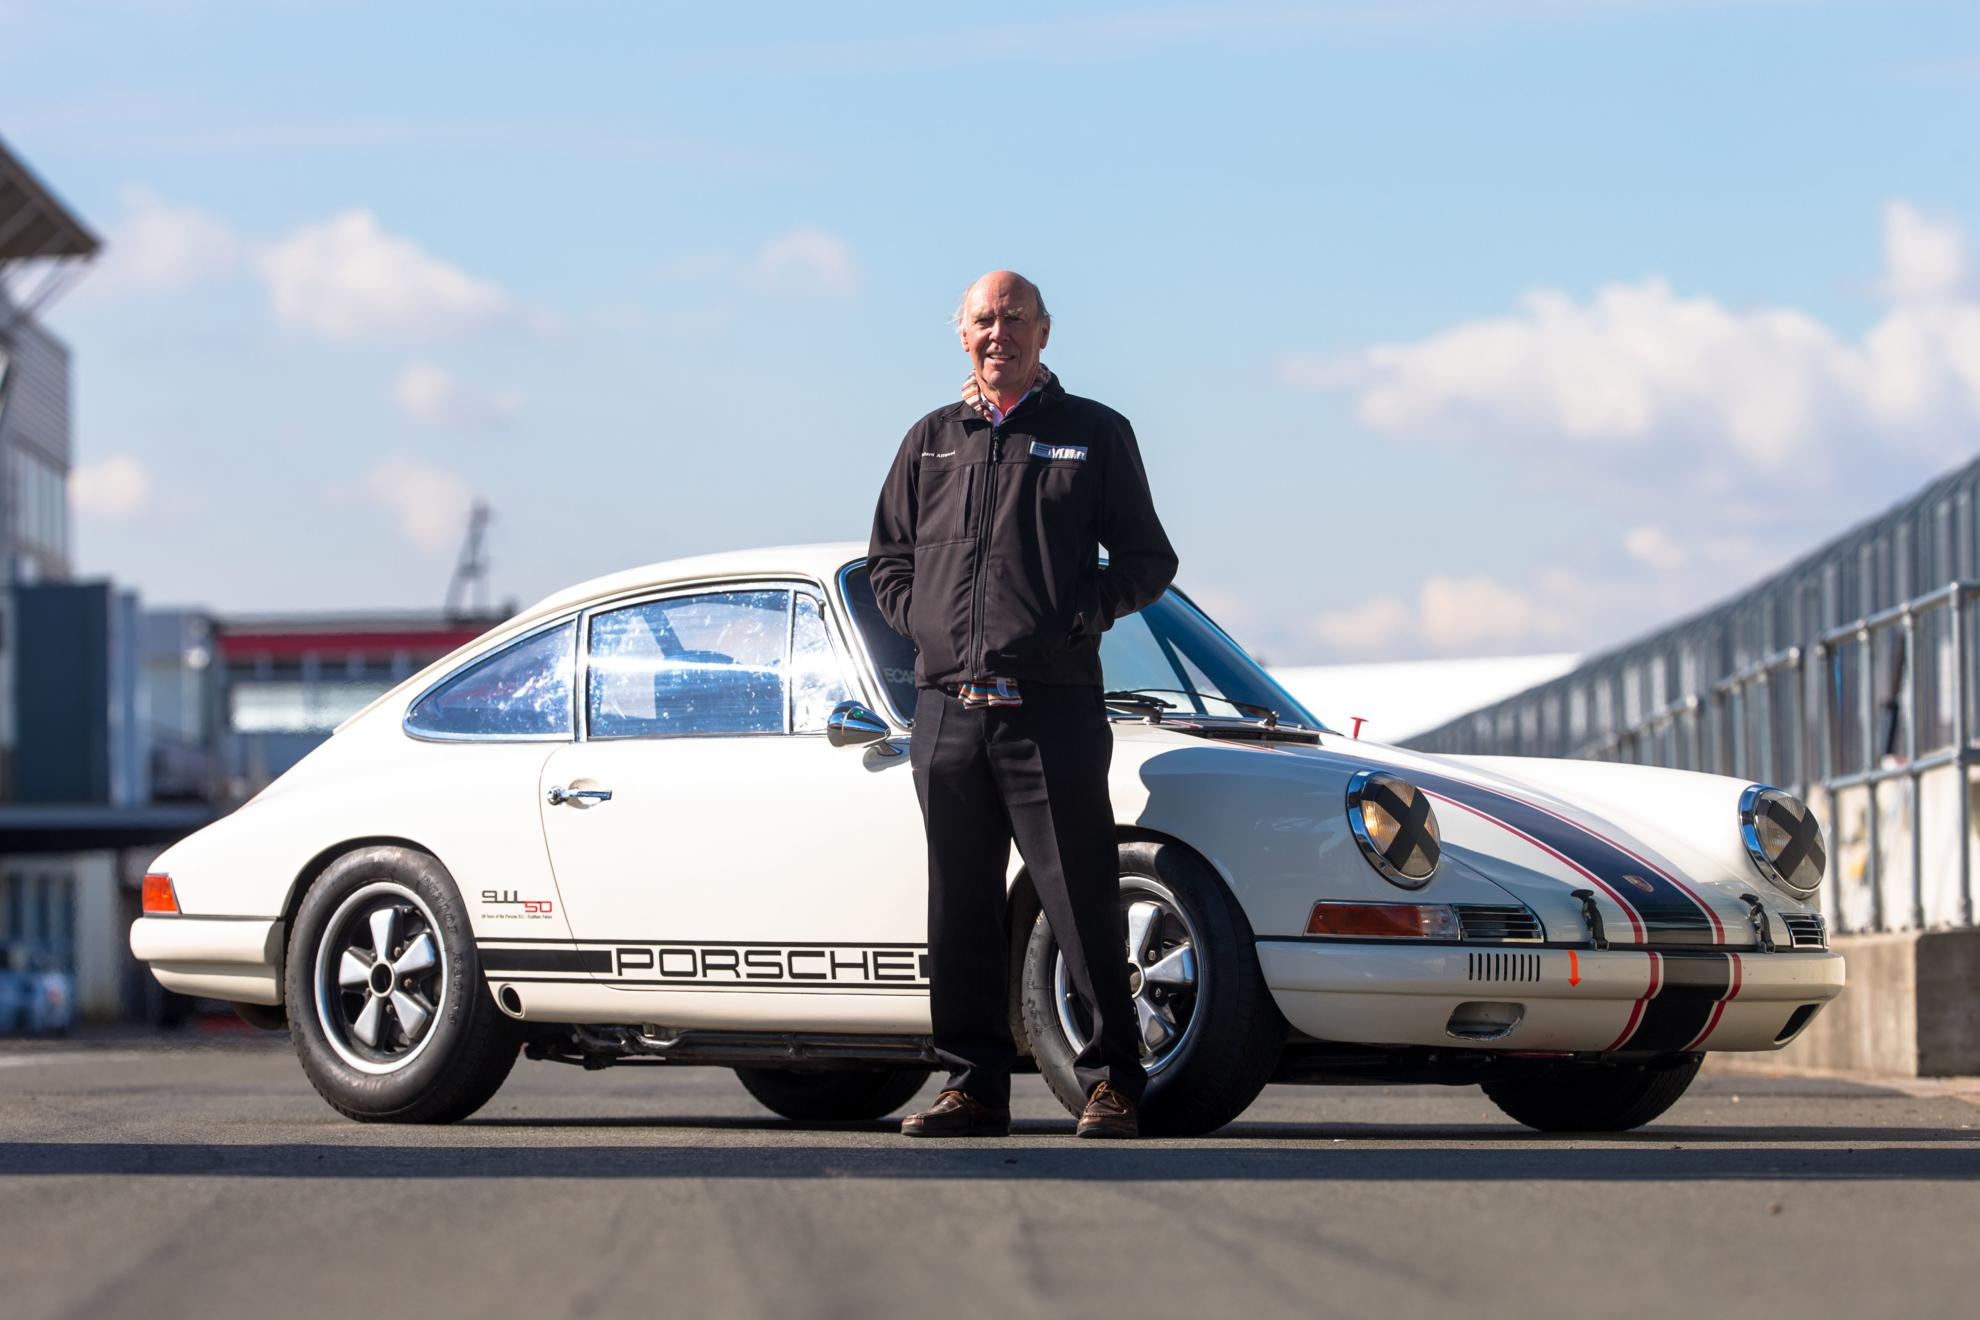 1970 Le Mans winner Richard Attwood, 1965 Porsche 911 Project 50